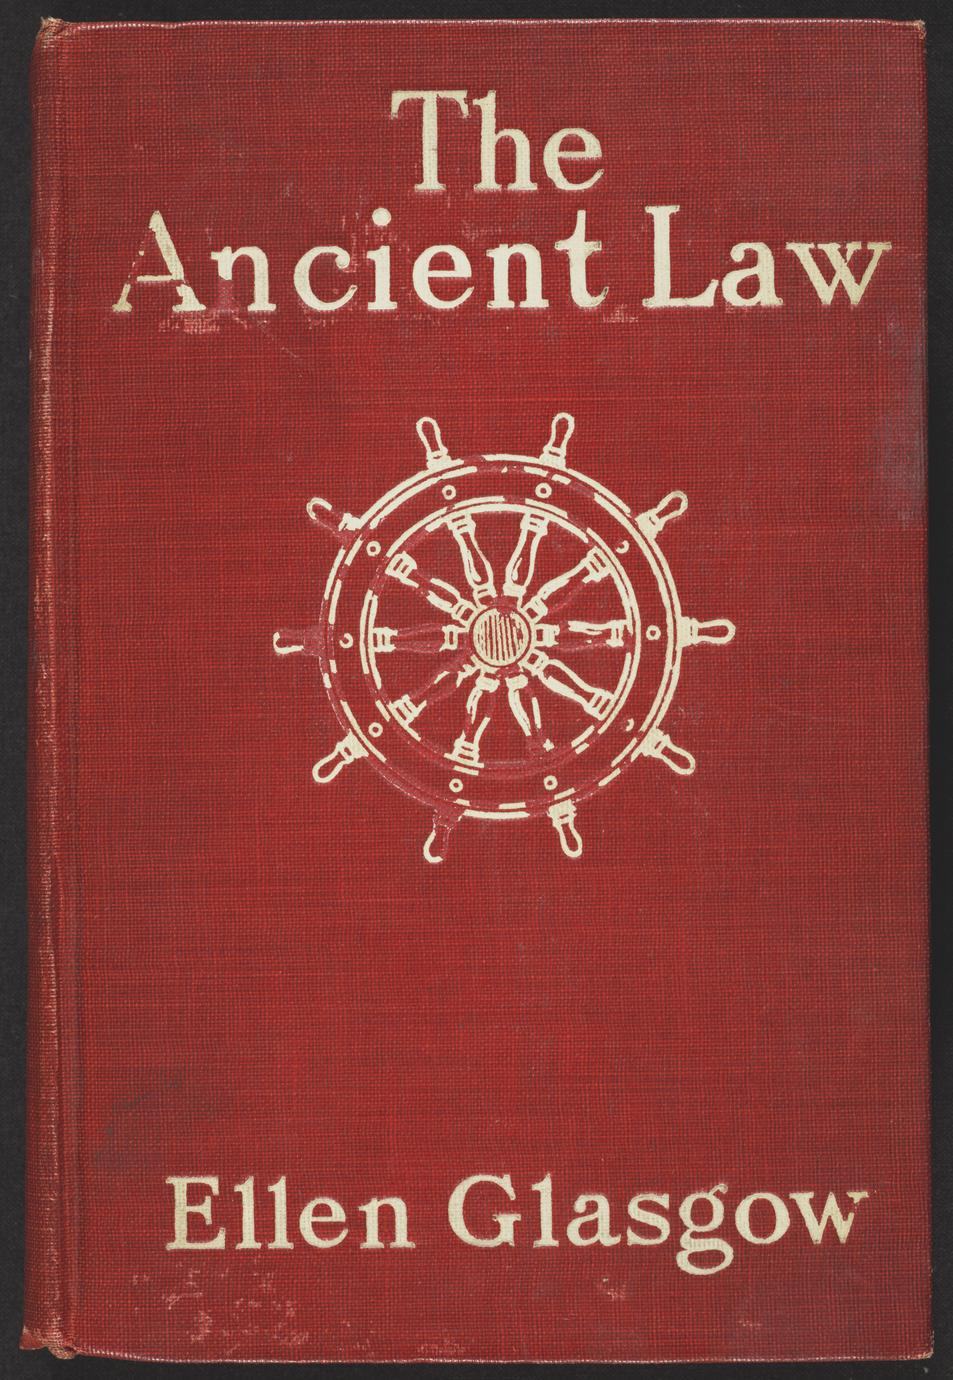 The ancient law (1 of 2)